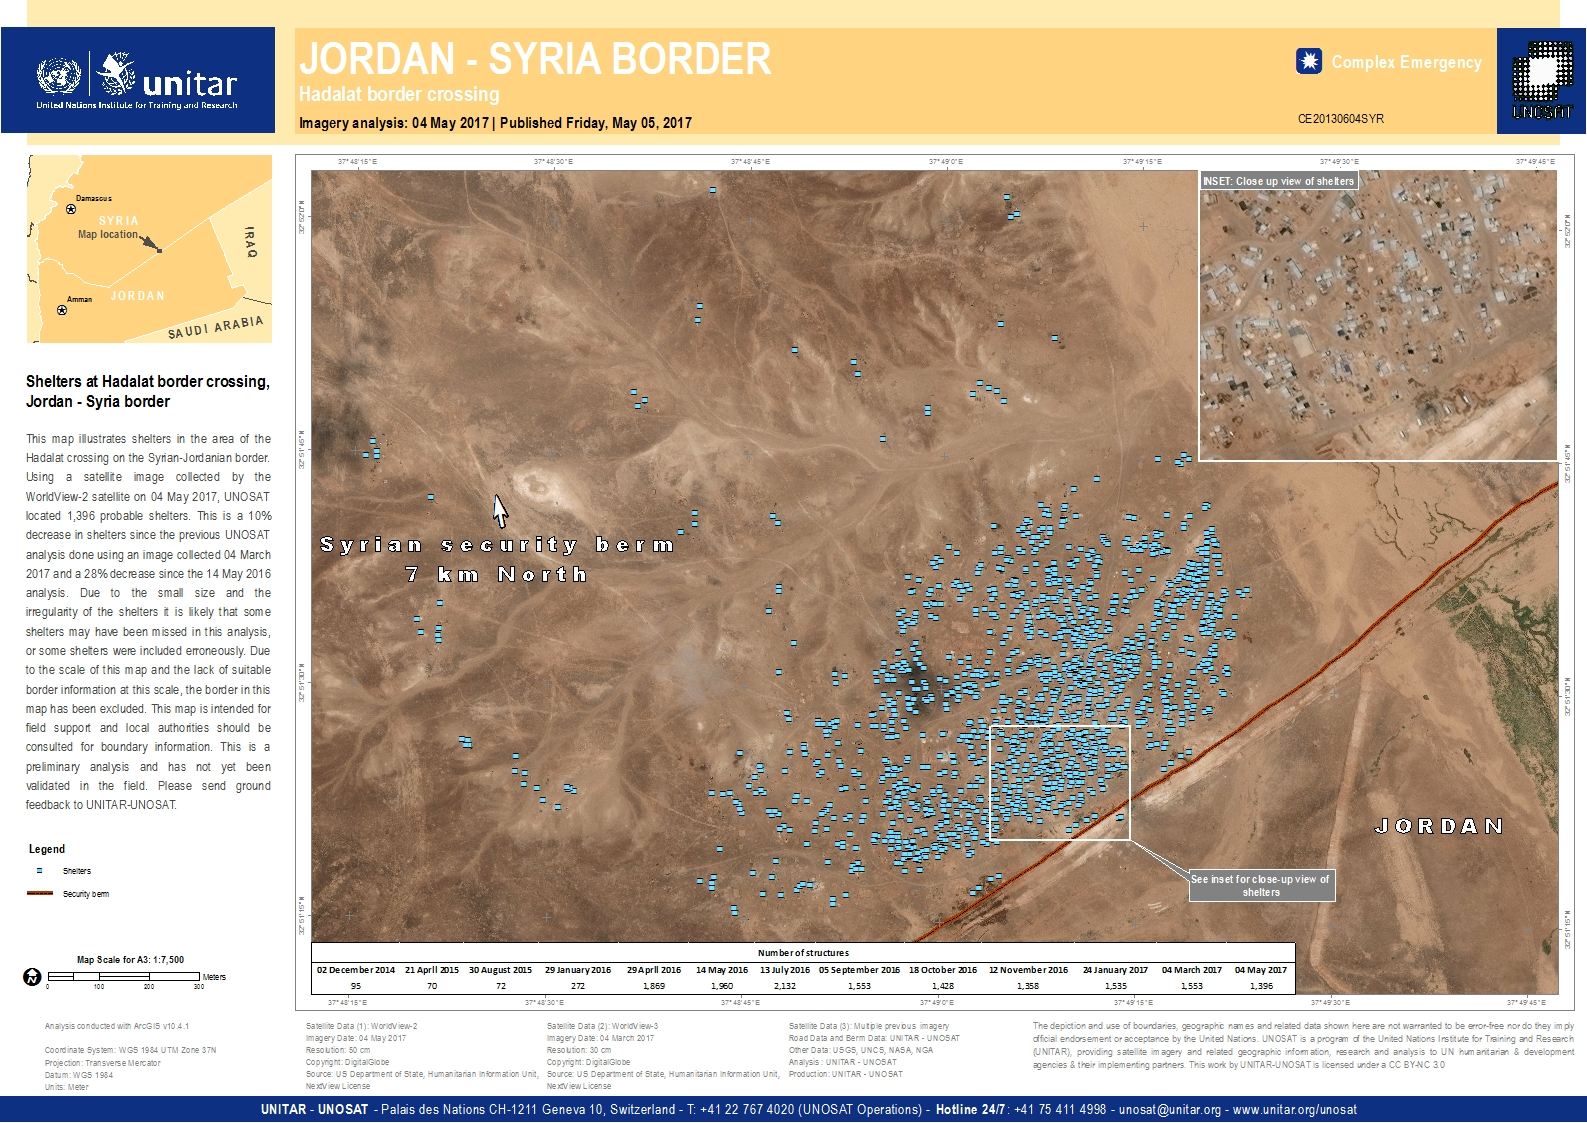 Shelters At Hadalat Border Crossing Jordan Syria Border UNITAR - Where is jordan located